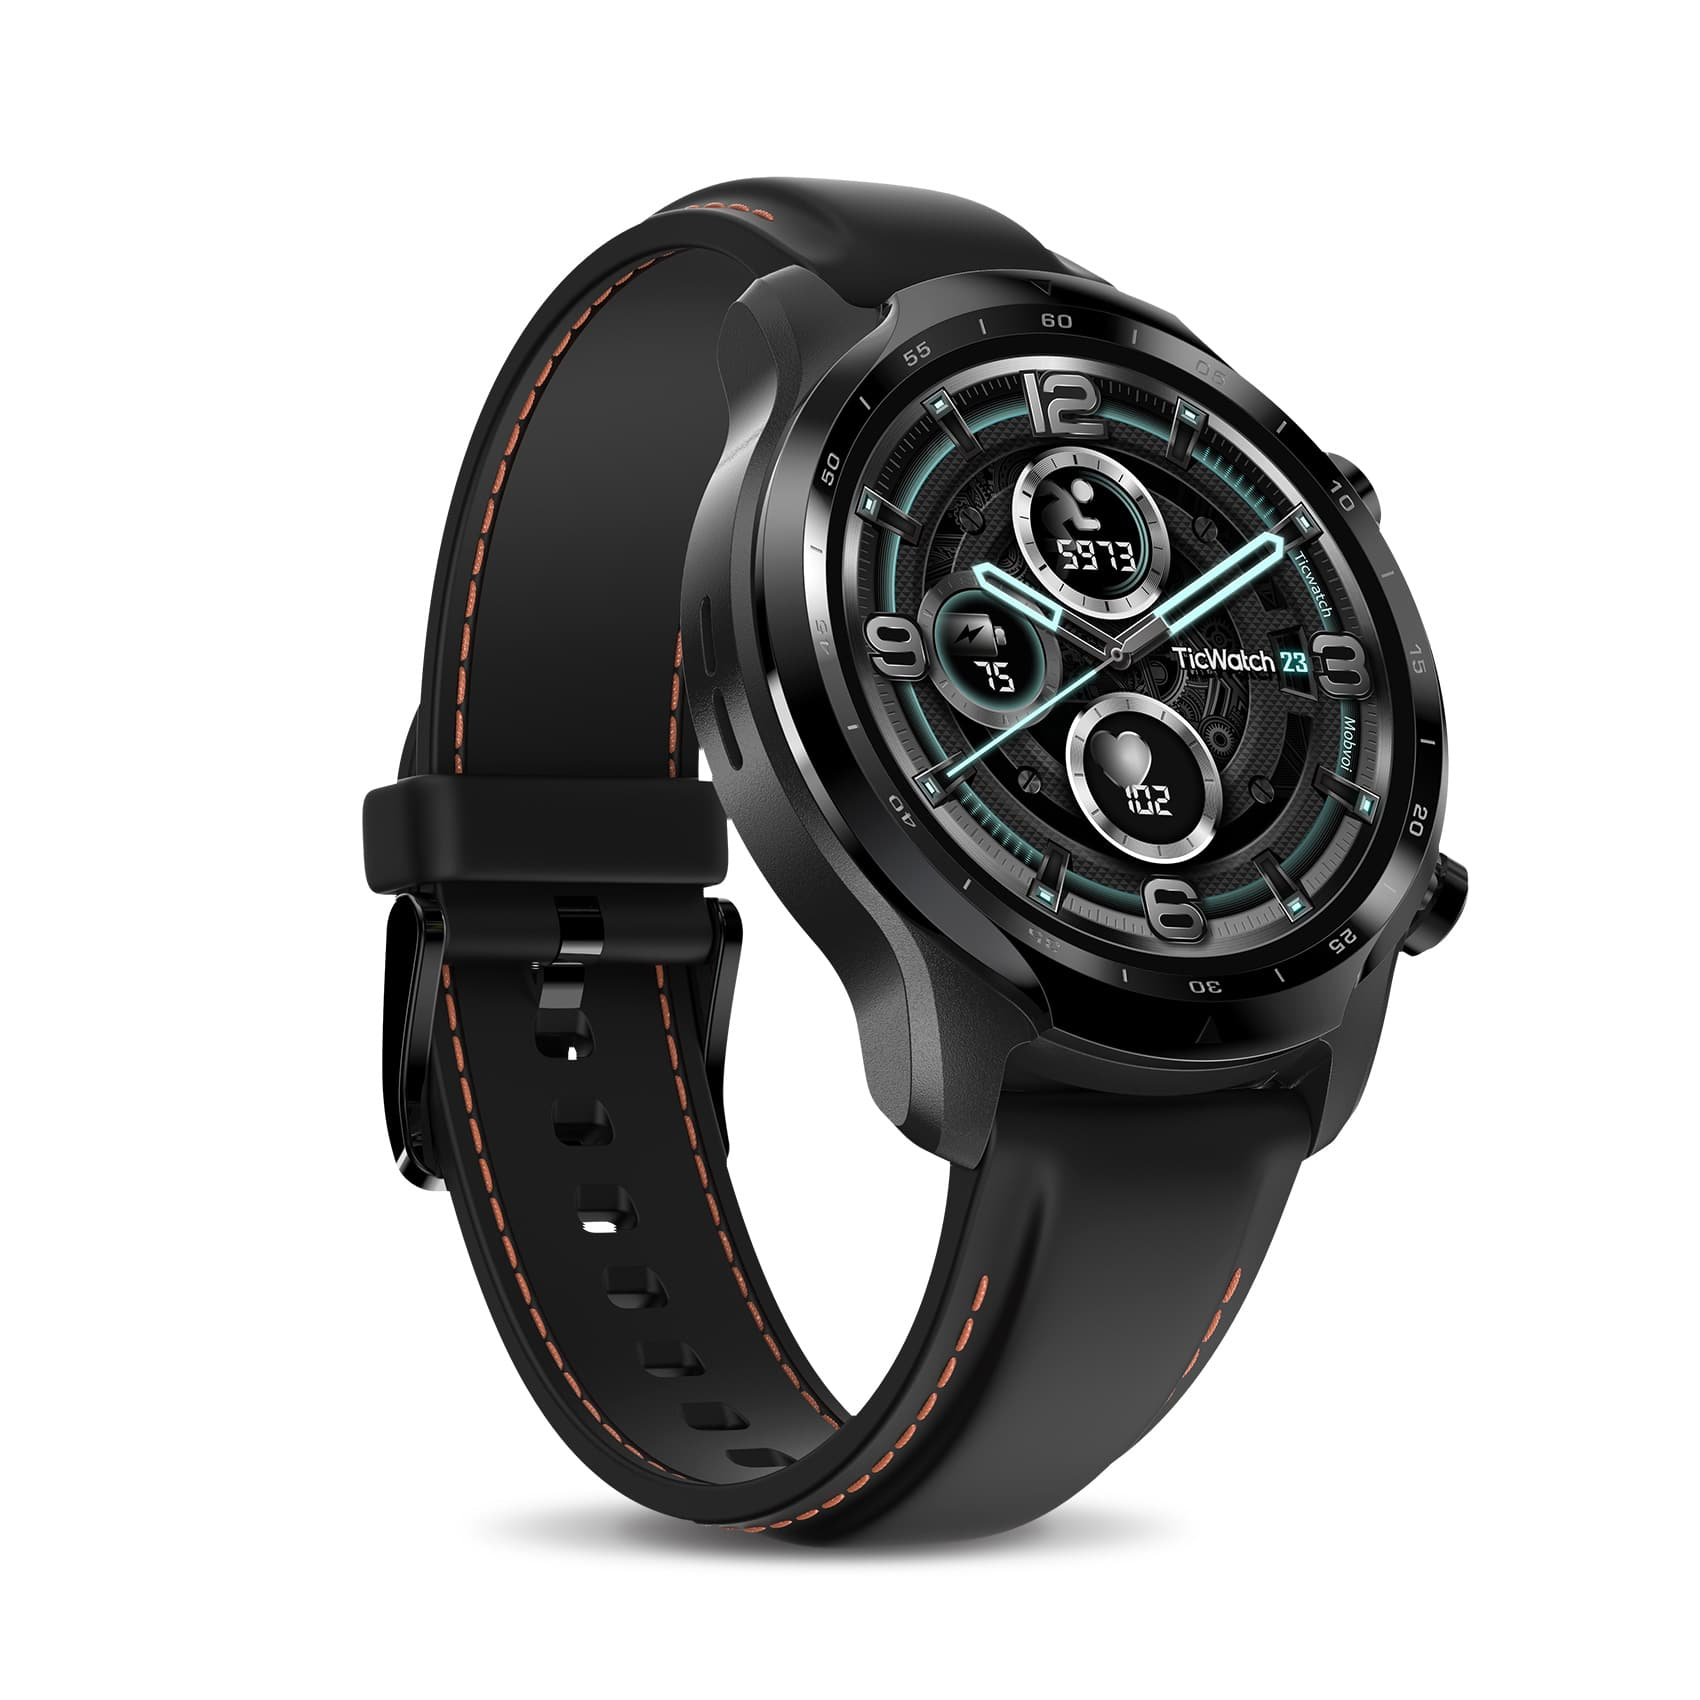 TicWatch Pro 3 GPS Smartwatch for Men and Women, Wear OS by Google, Dual-Layer Display 2.0, Long Battery Life - Walmart.com - Walmart.com $254.99